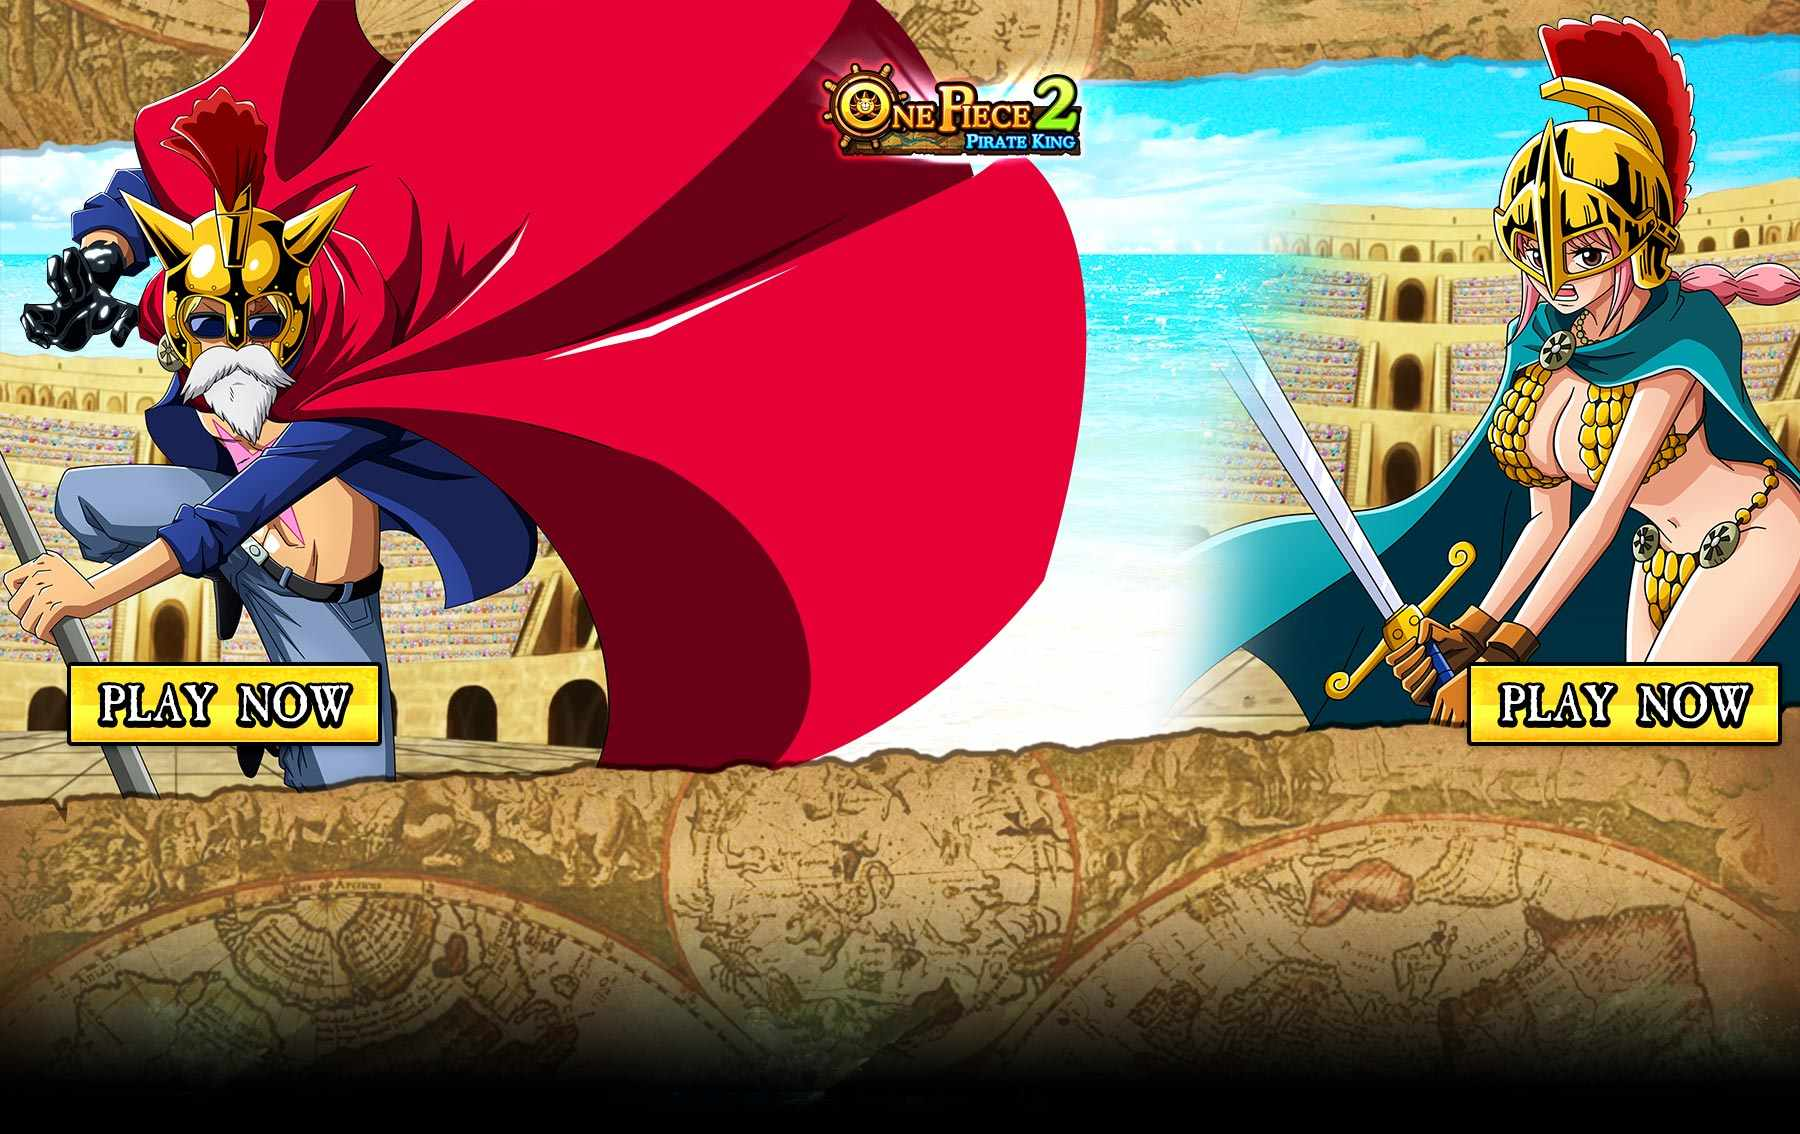 one piece online 2 pirate king wallpapers. Black Bedroom Furniture Sets. Home Design Ideas